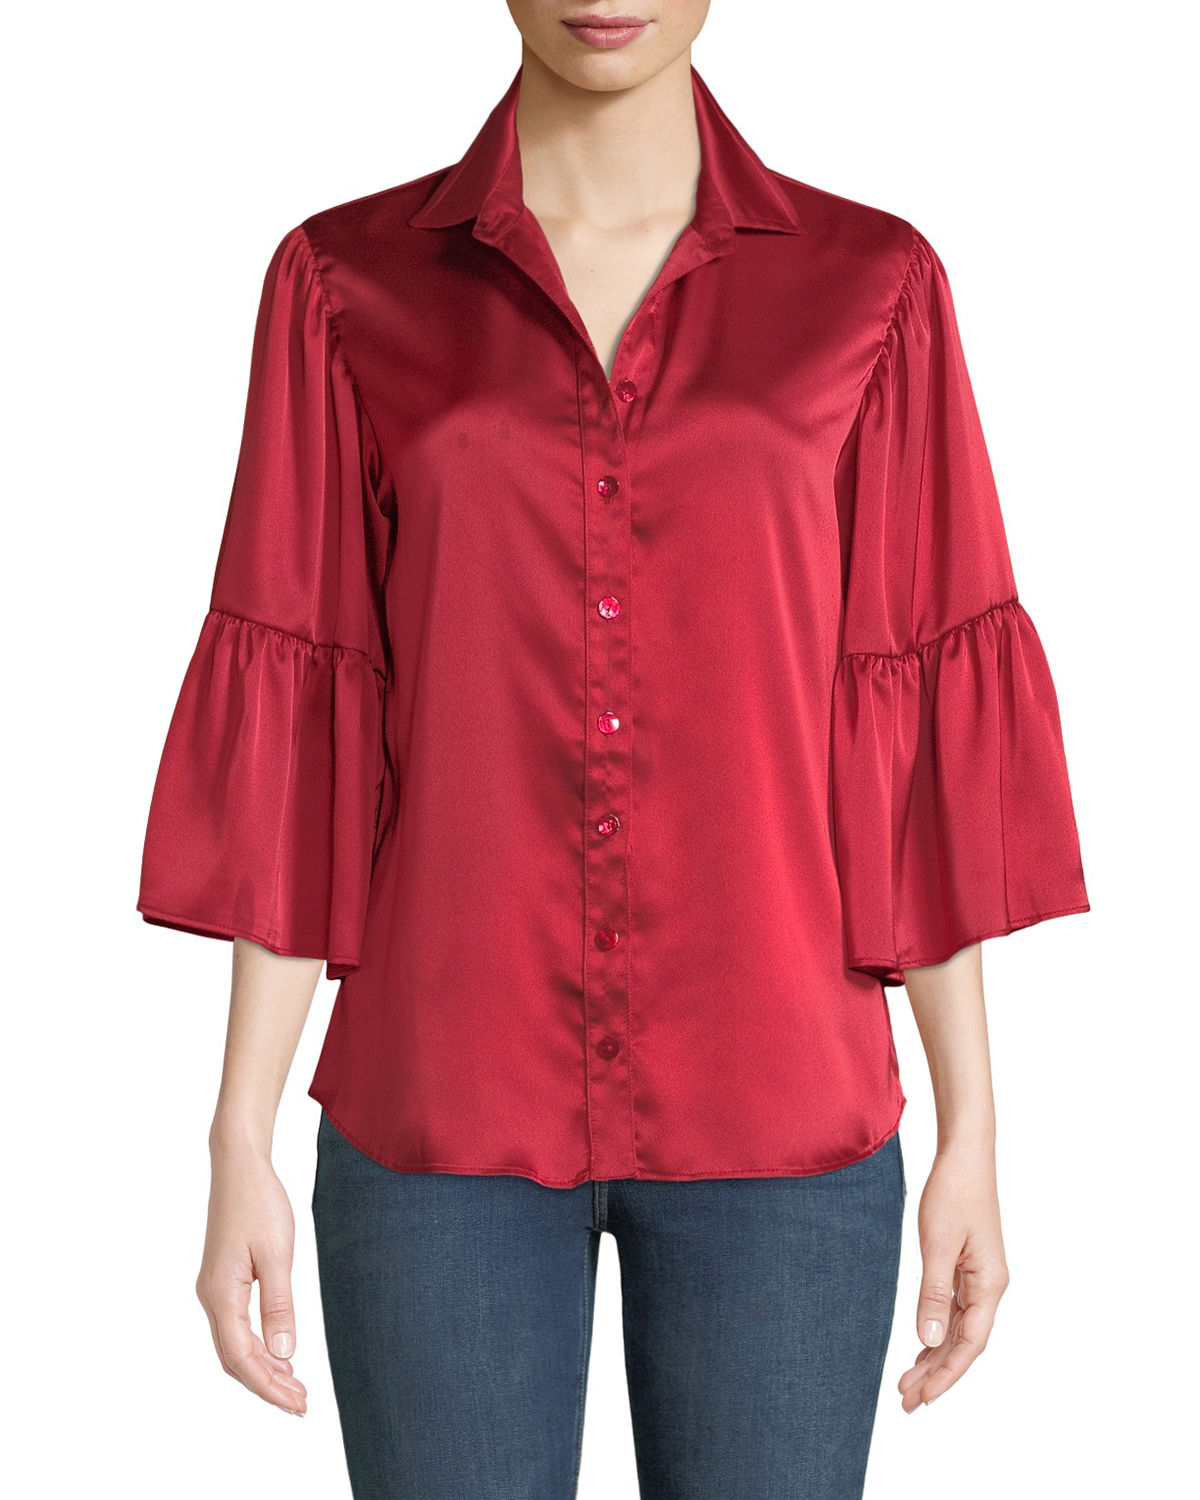 563a0dc3 Finley Naomi Satin Button-Front Shirt In Red | ModeSens